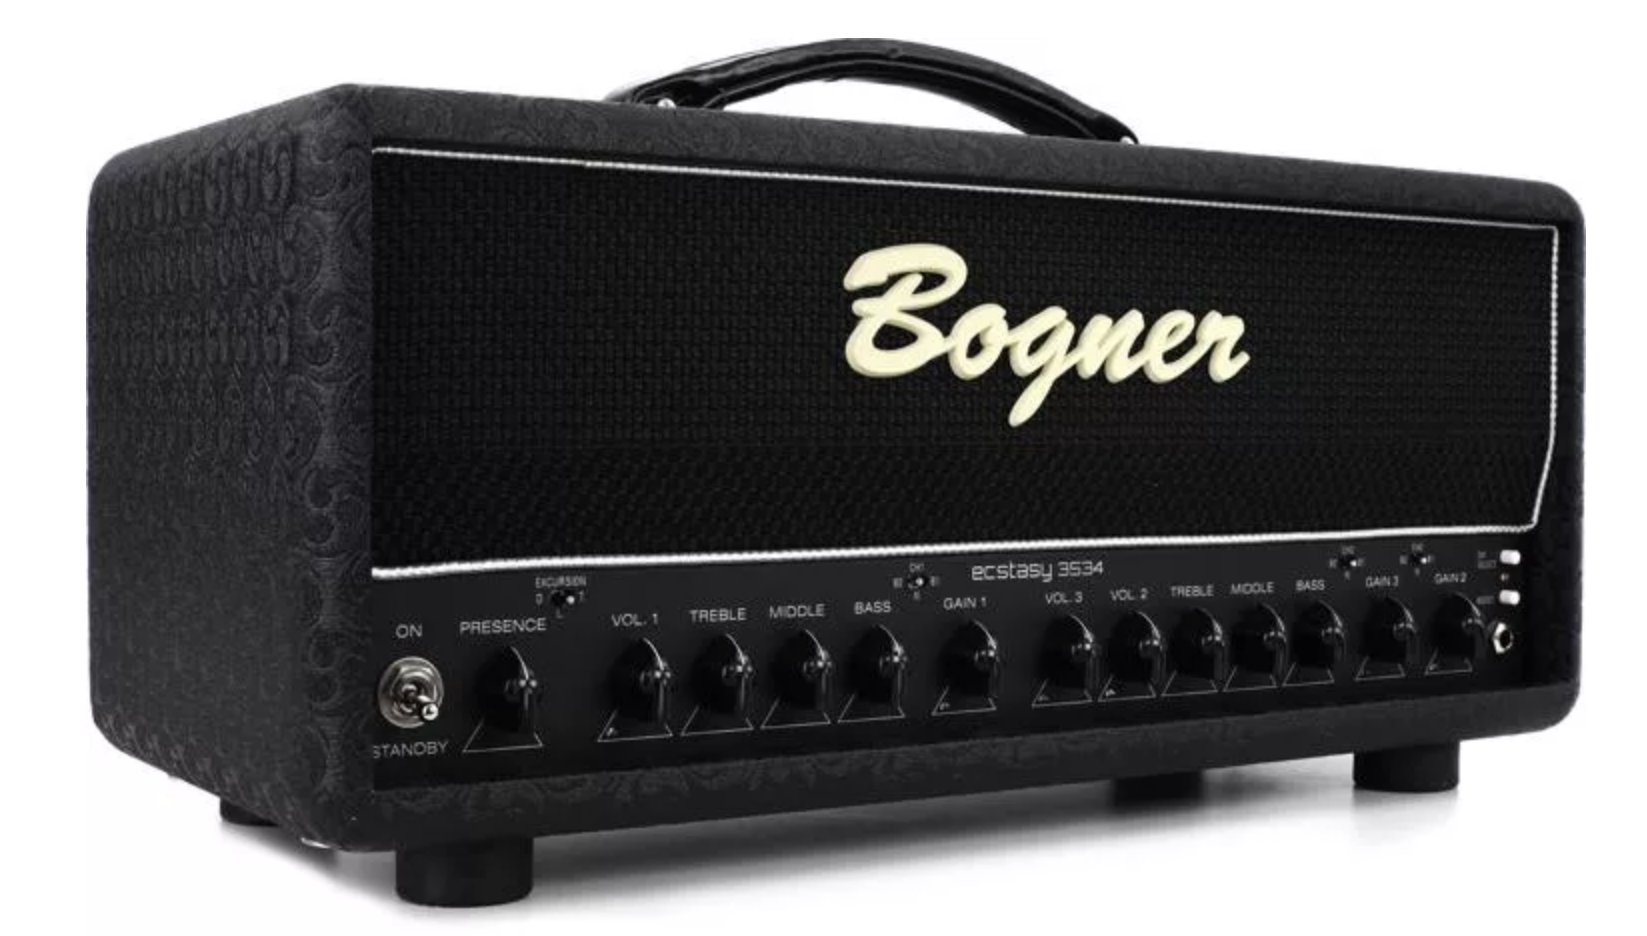 Bogner Ecstacy 3534 NEW FROM NAMM